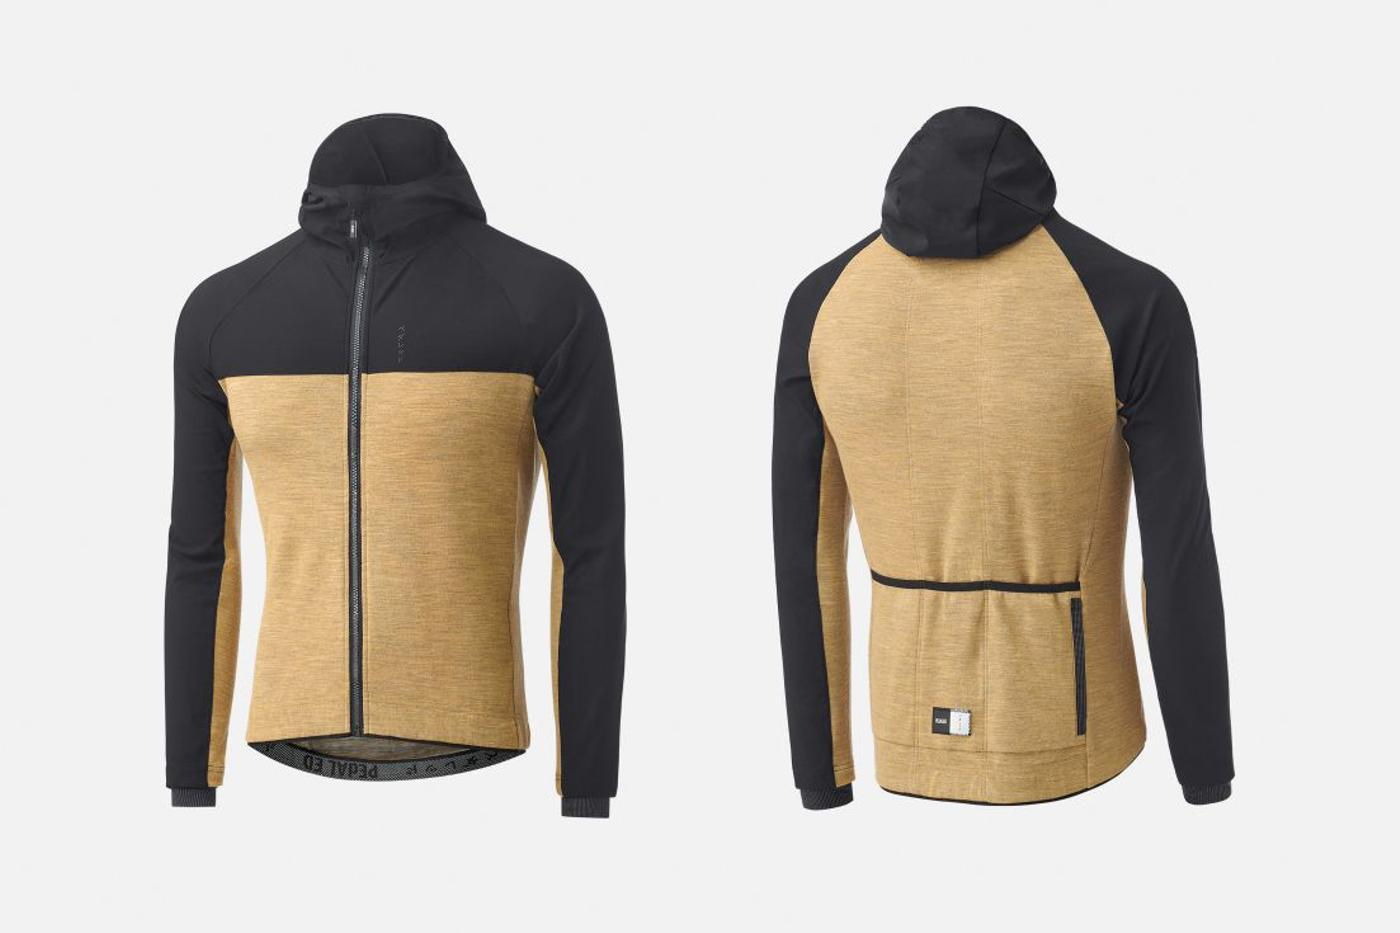 PEdALED's Jary Collection: All-Road Hooded Merino Jersey